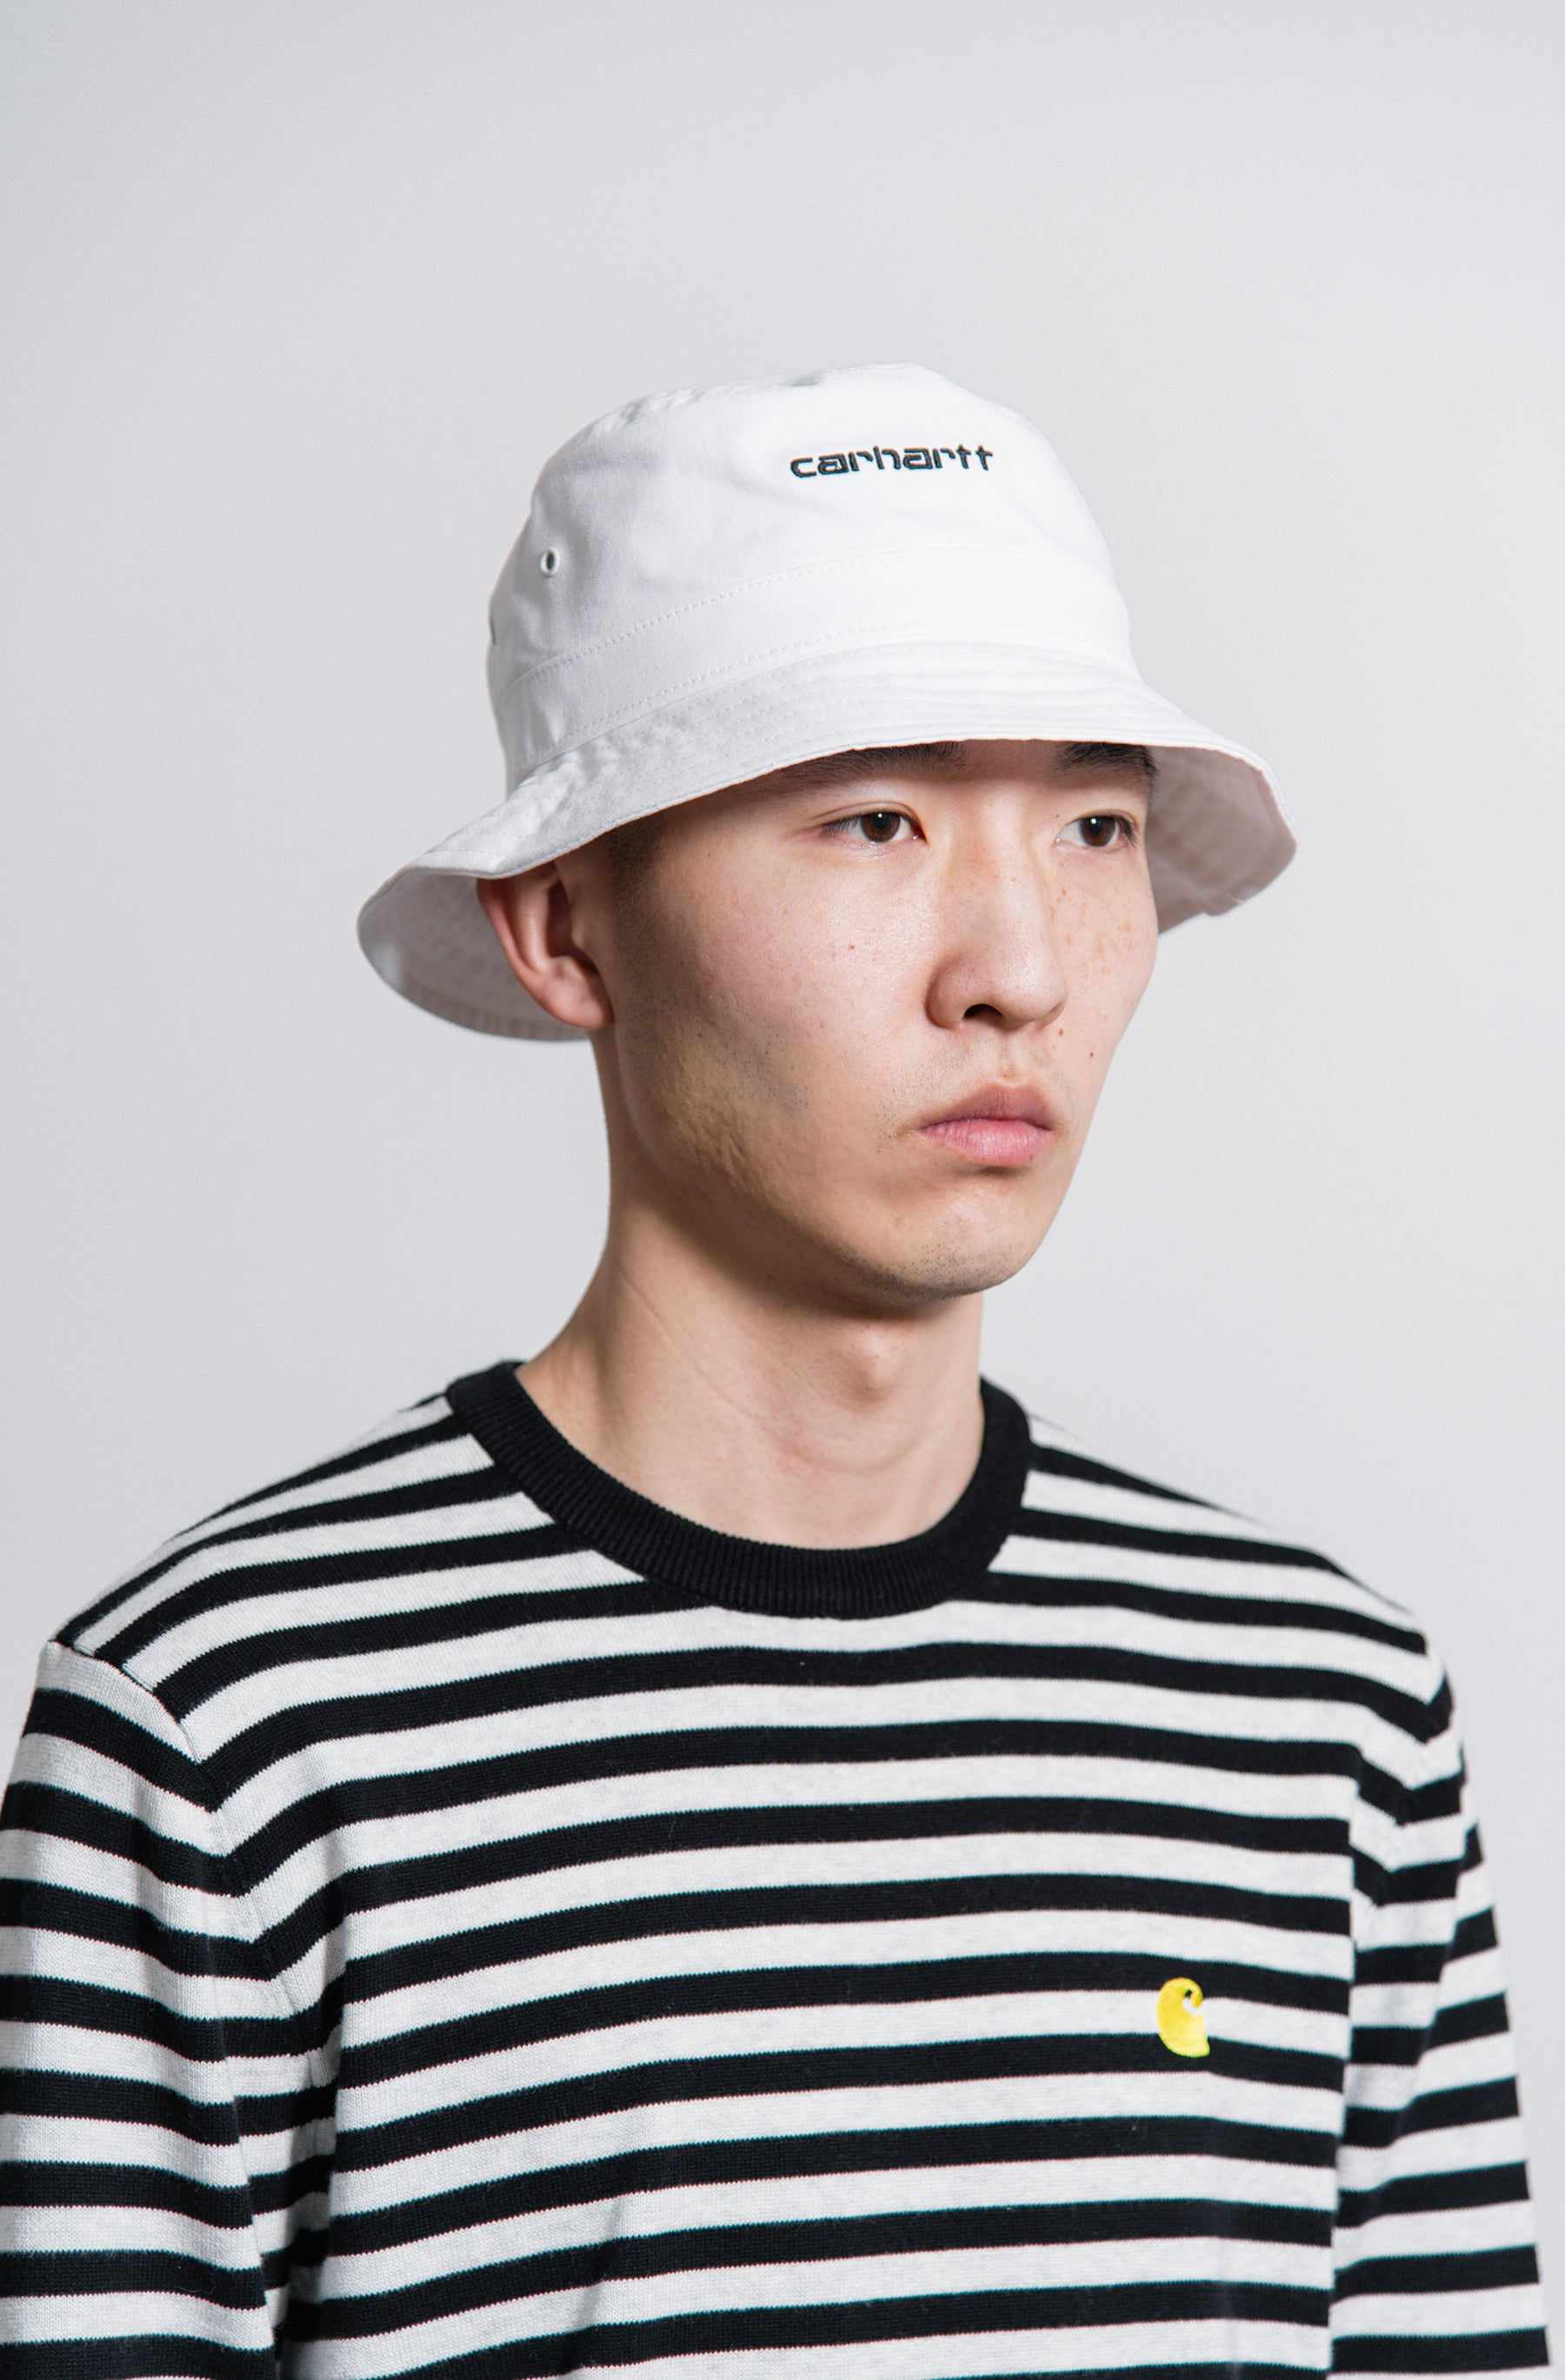 b2d9af44e9b8f Carhartt Work In Progress Script Bucket Hat White - NOMAD